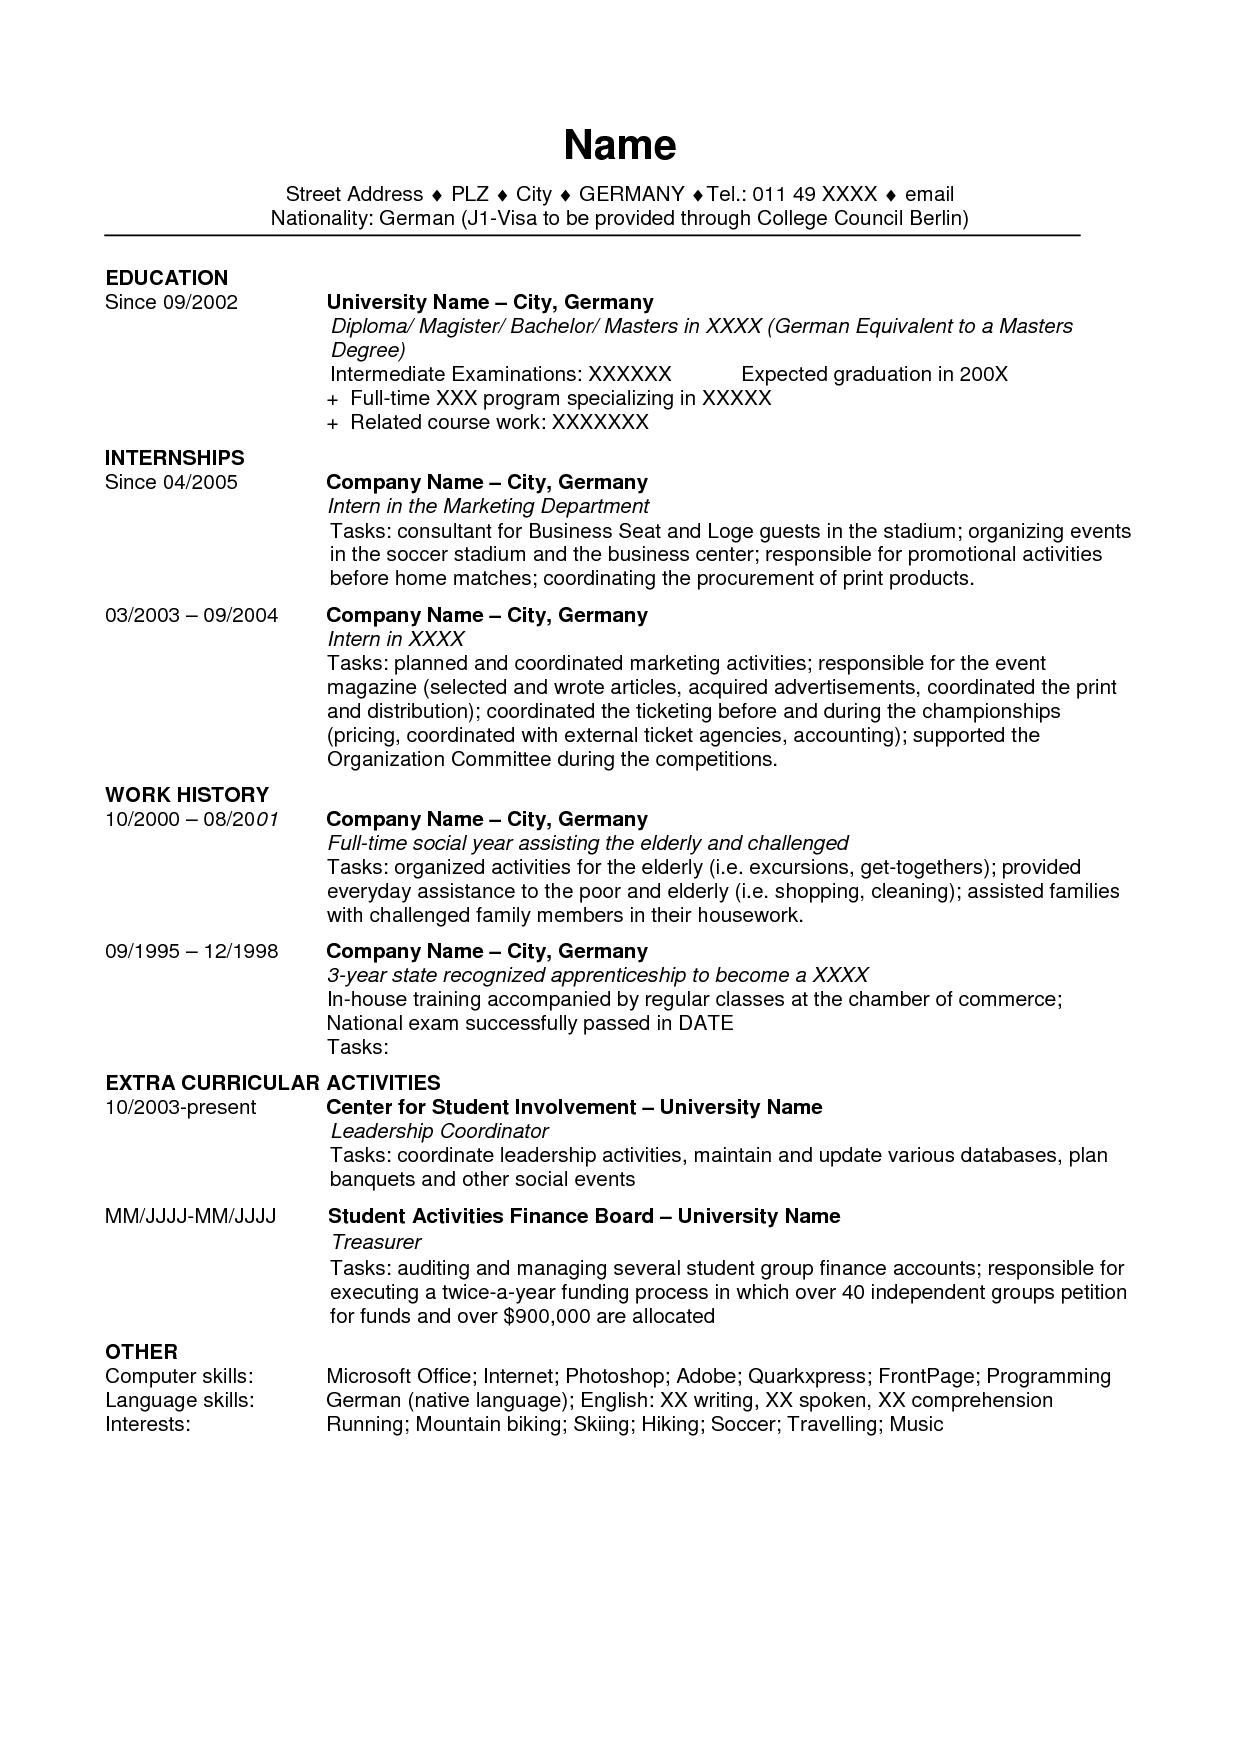 89 Excellent Us Resume Format with Ideas